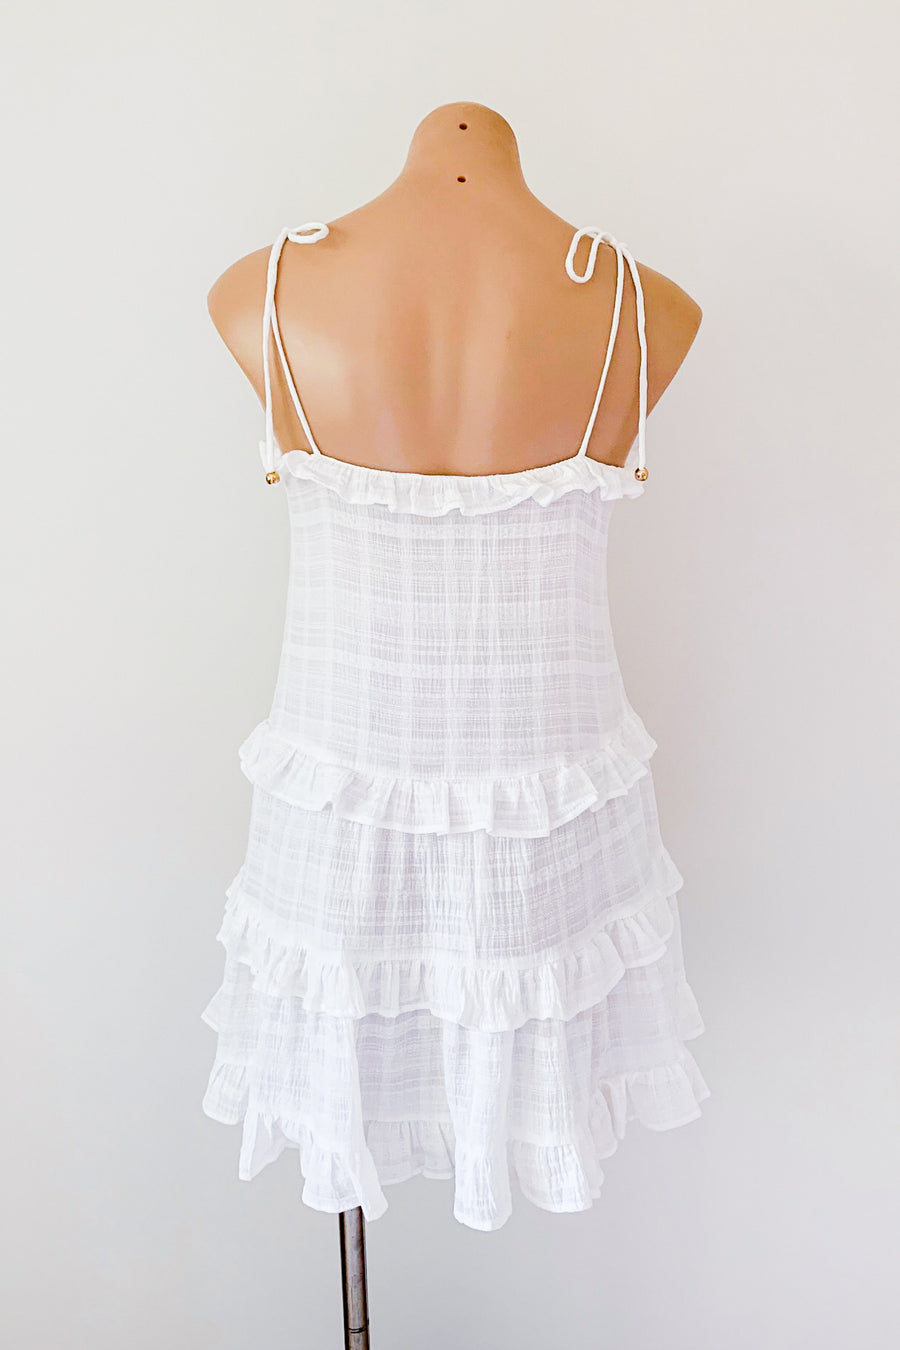 Calypso Dress in White for $75.00